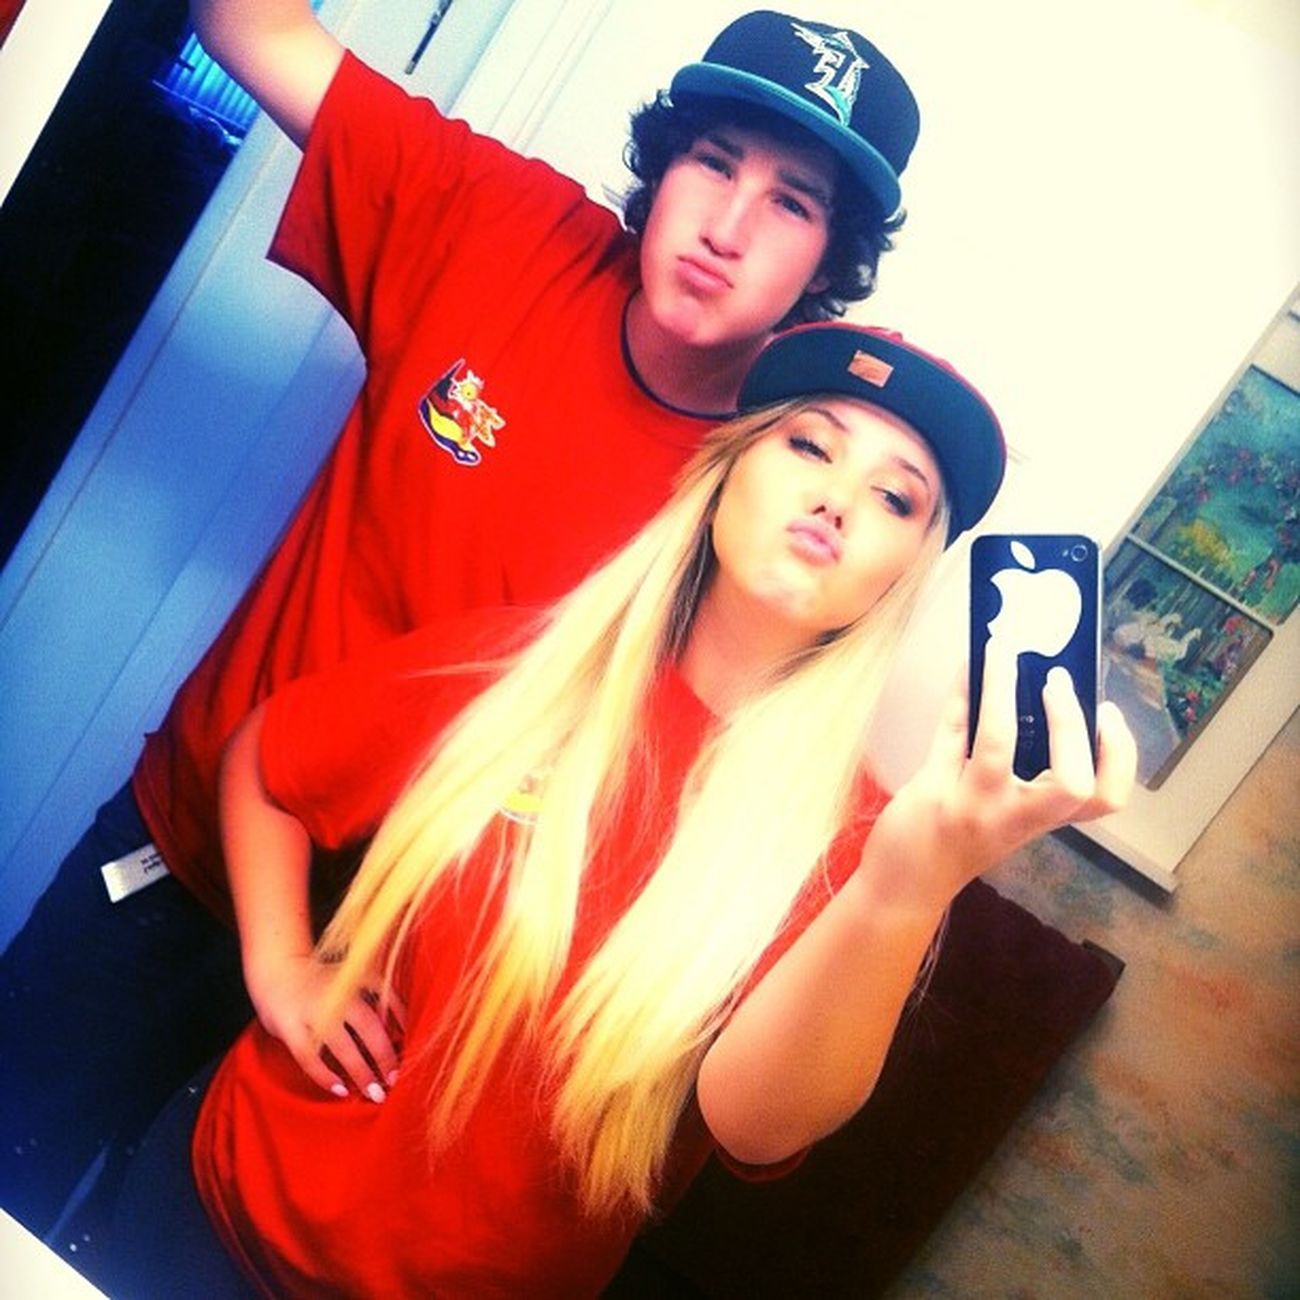 Me & my lil bro on our way to work. ? Pimpin Snapbacks Duckface Wecoollikethat brothersisterlove @cracker101